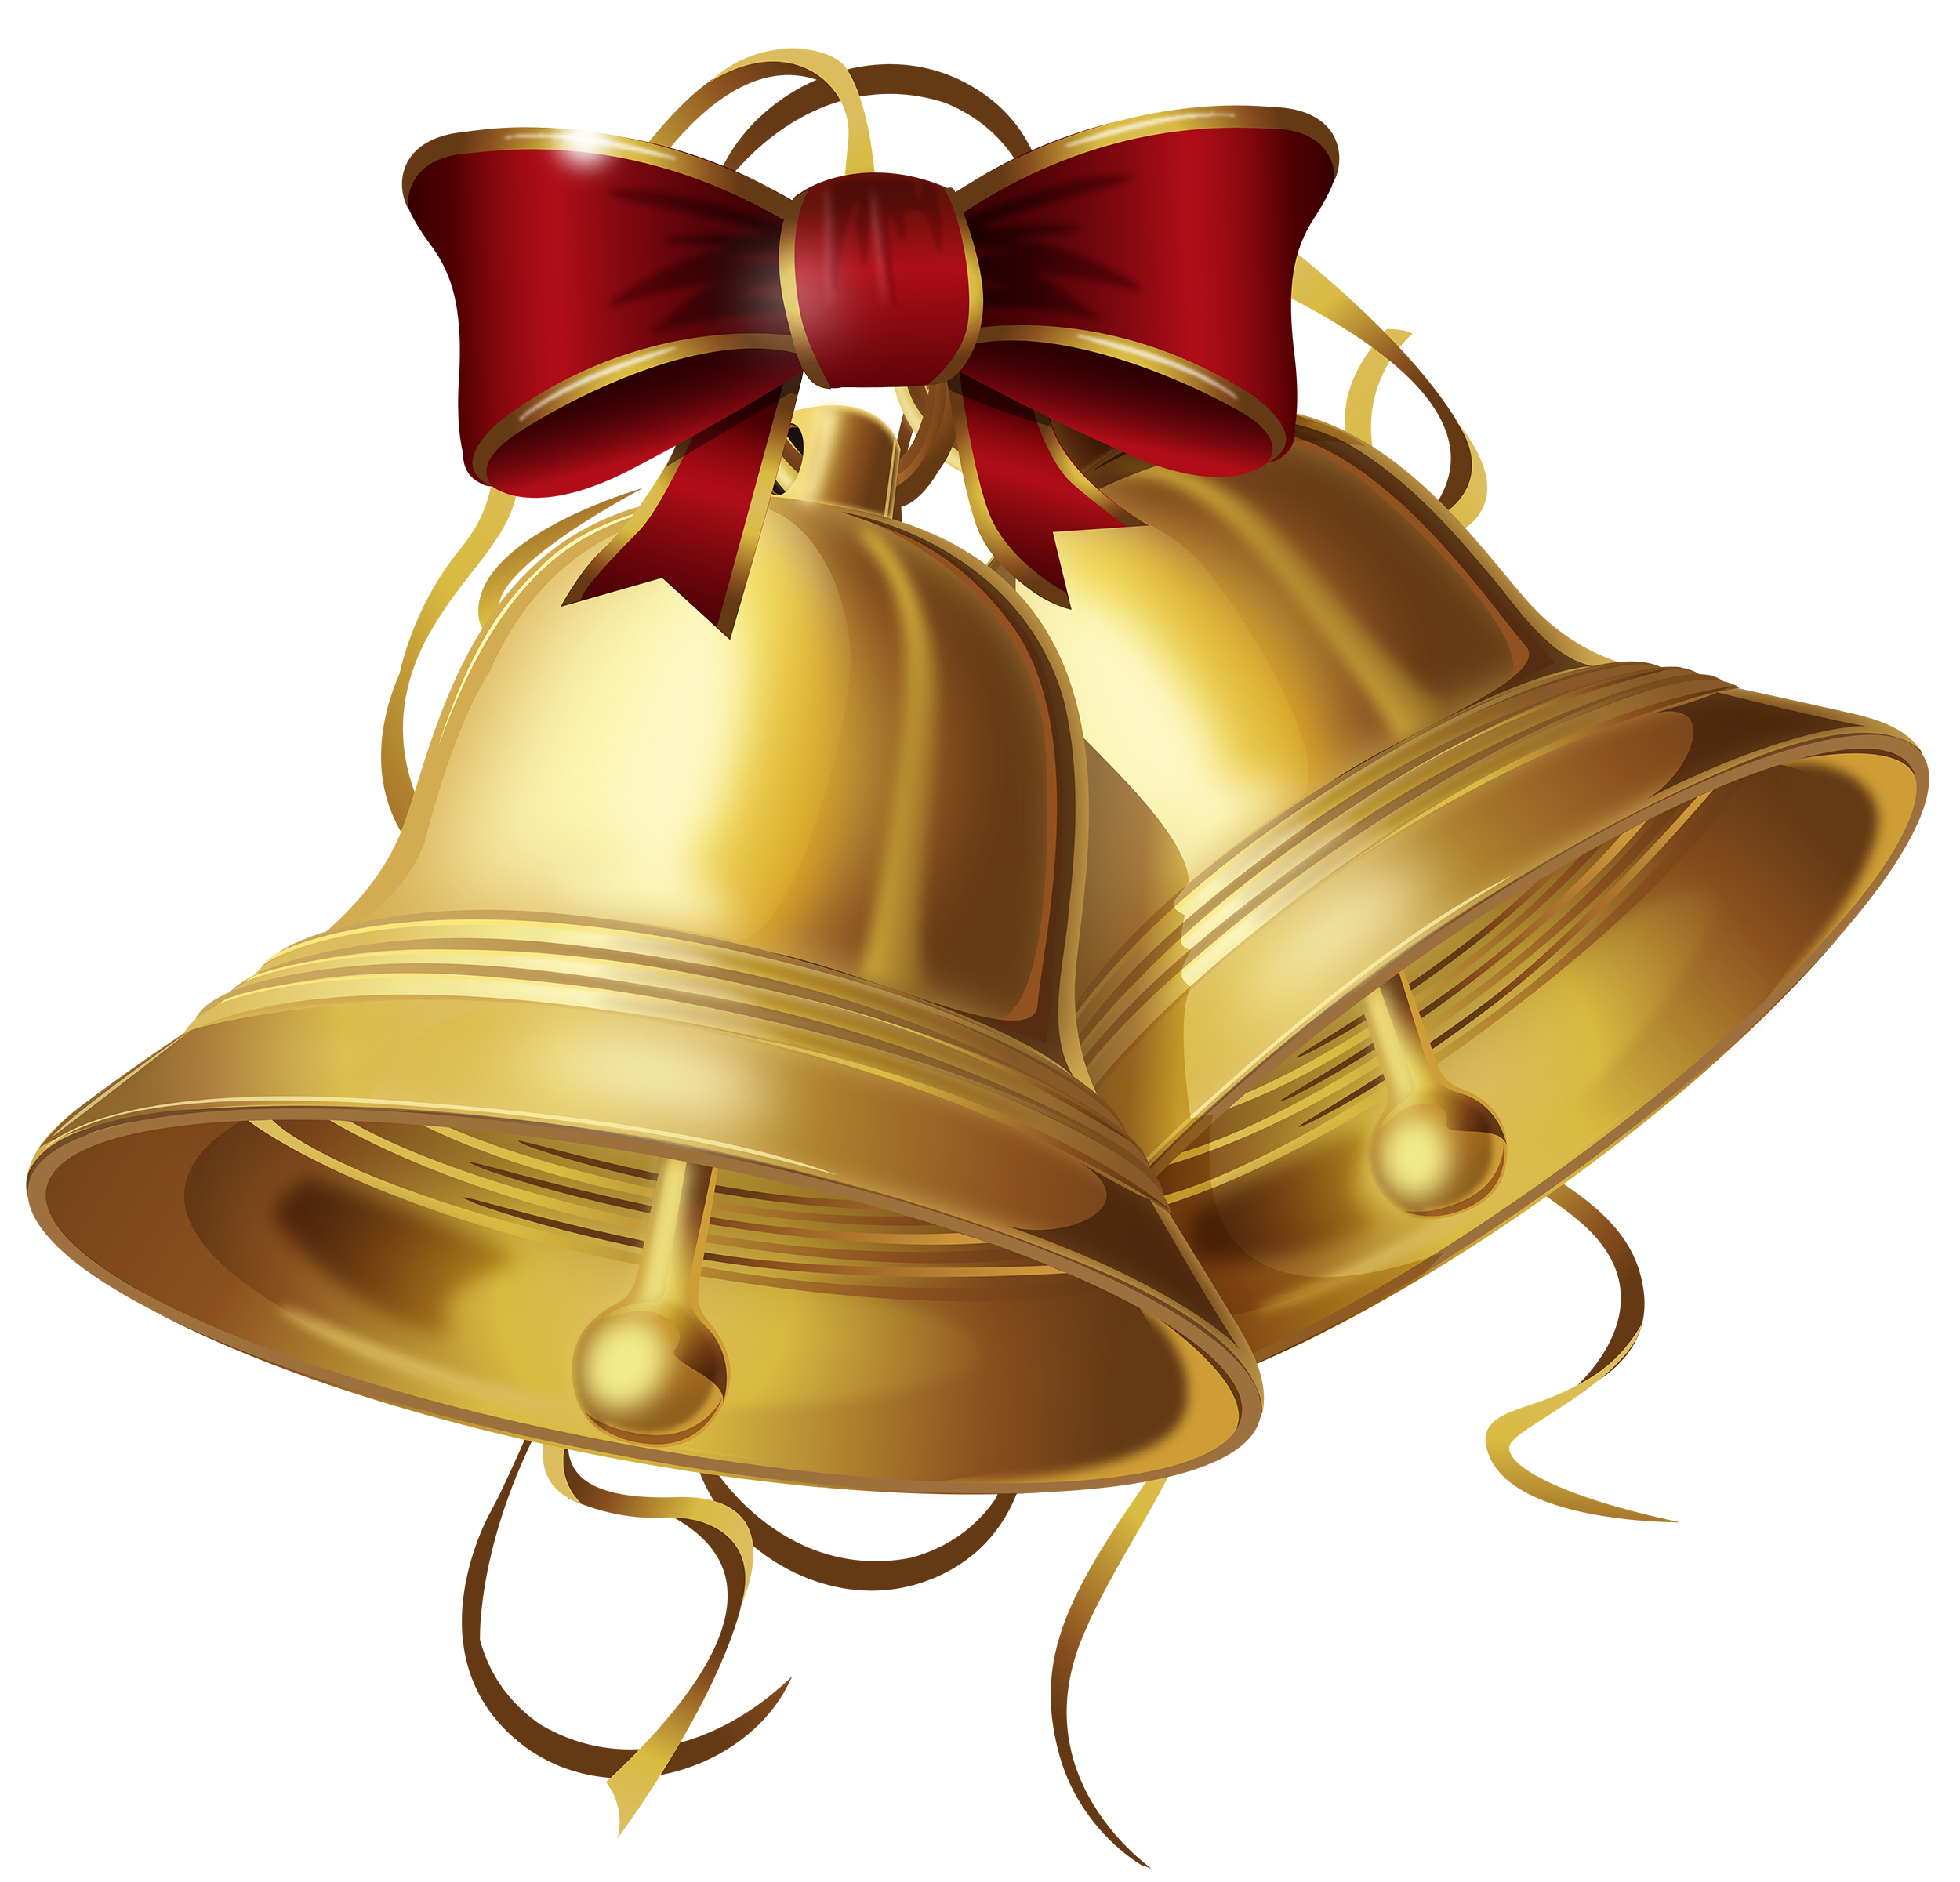 Bells clipart easter. Christmas png best web